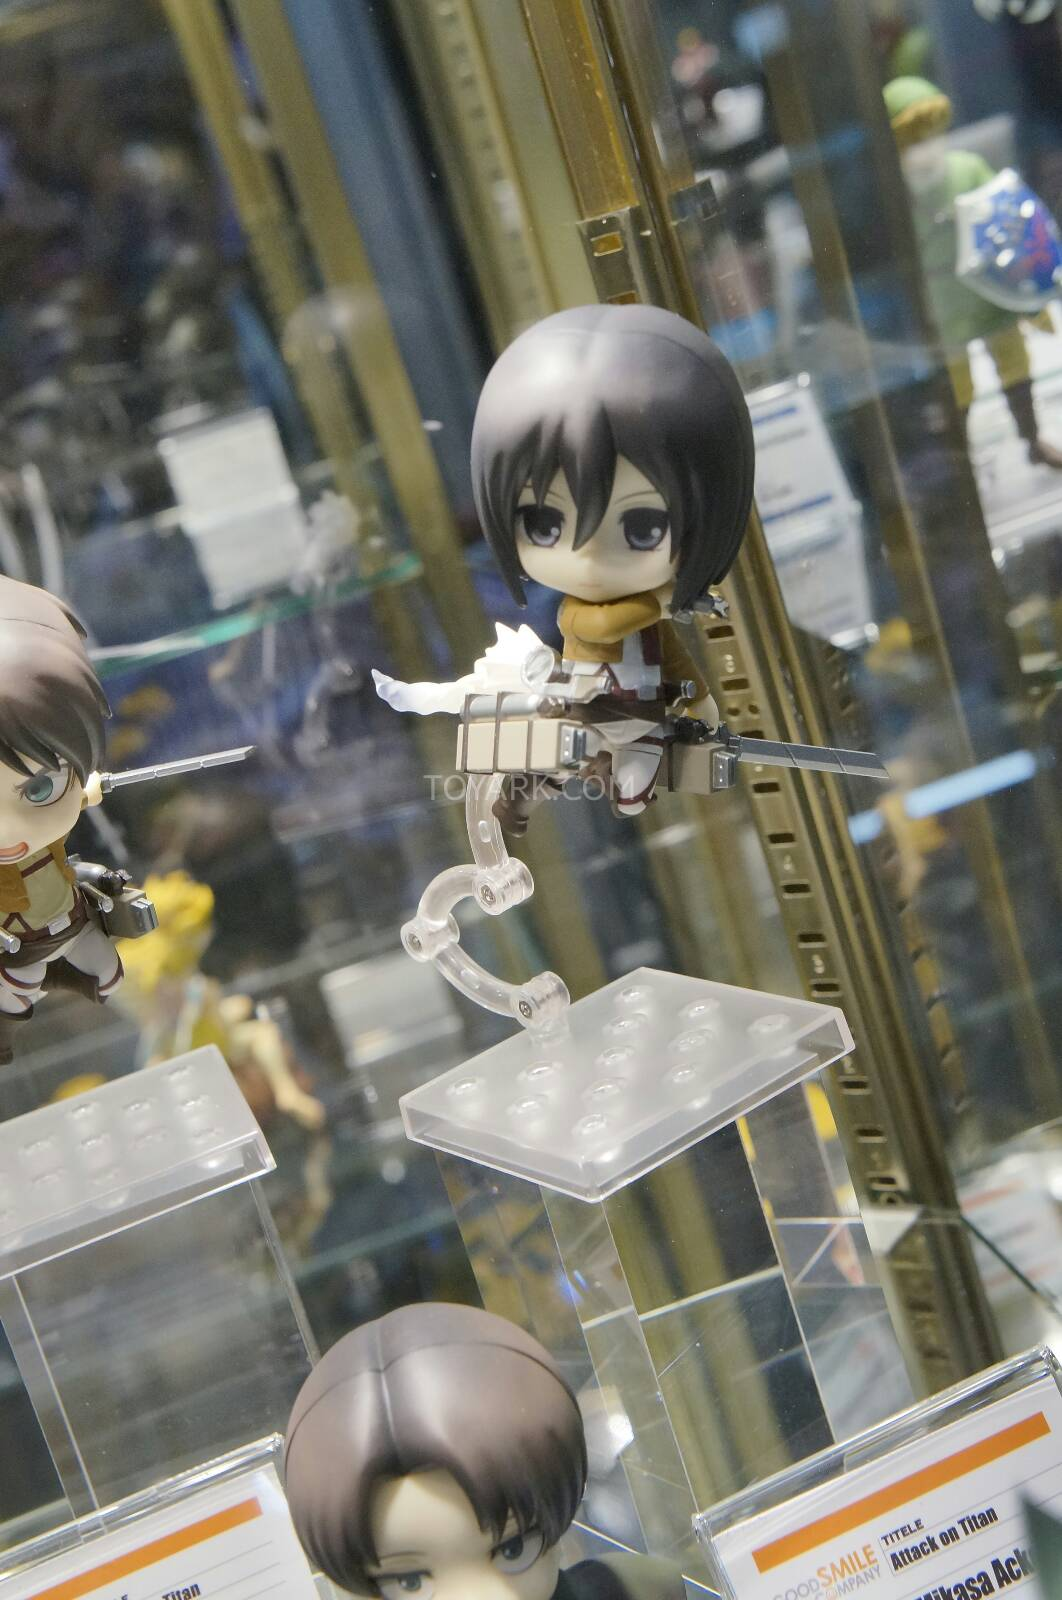 [EVENTO] Toy Fair 2014 - Good Smile Company / Max Factory / Phat Company / FREEing Toy-Fair-2014-Good-Smile-and-Max-Factory-Display-027